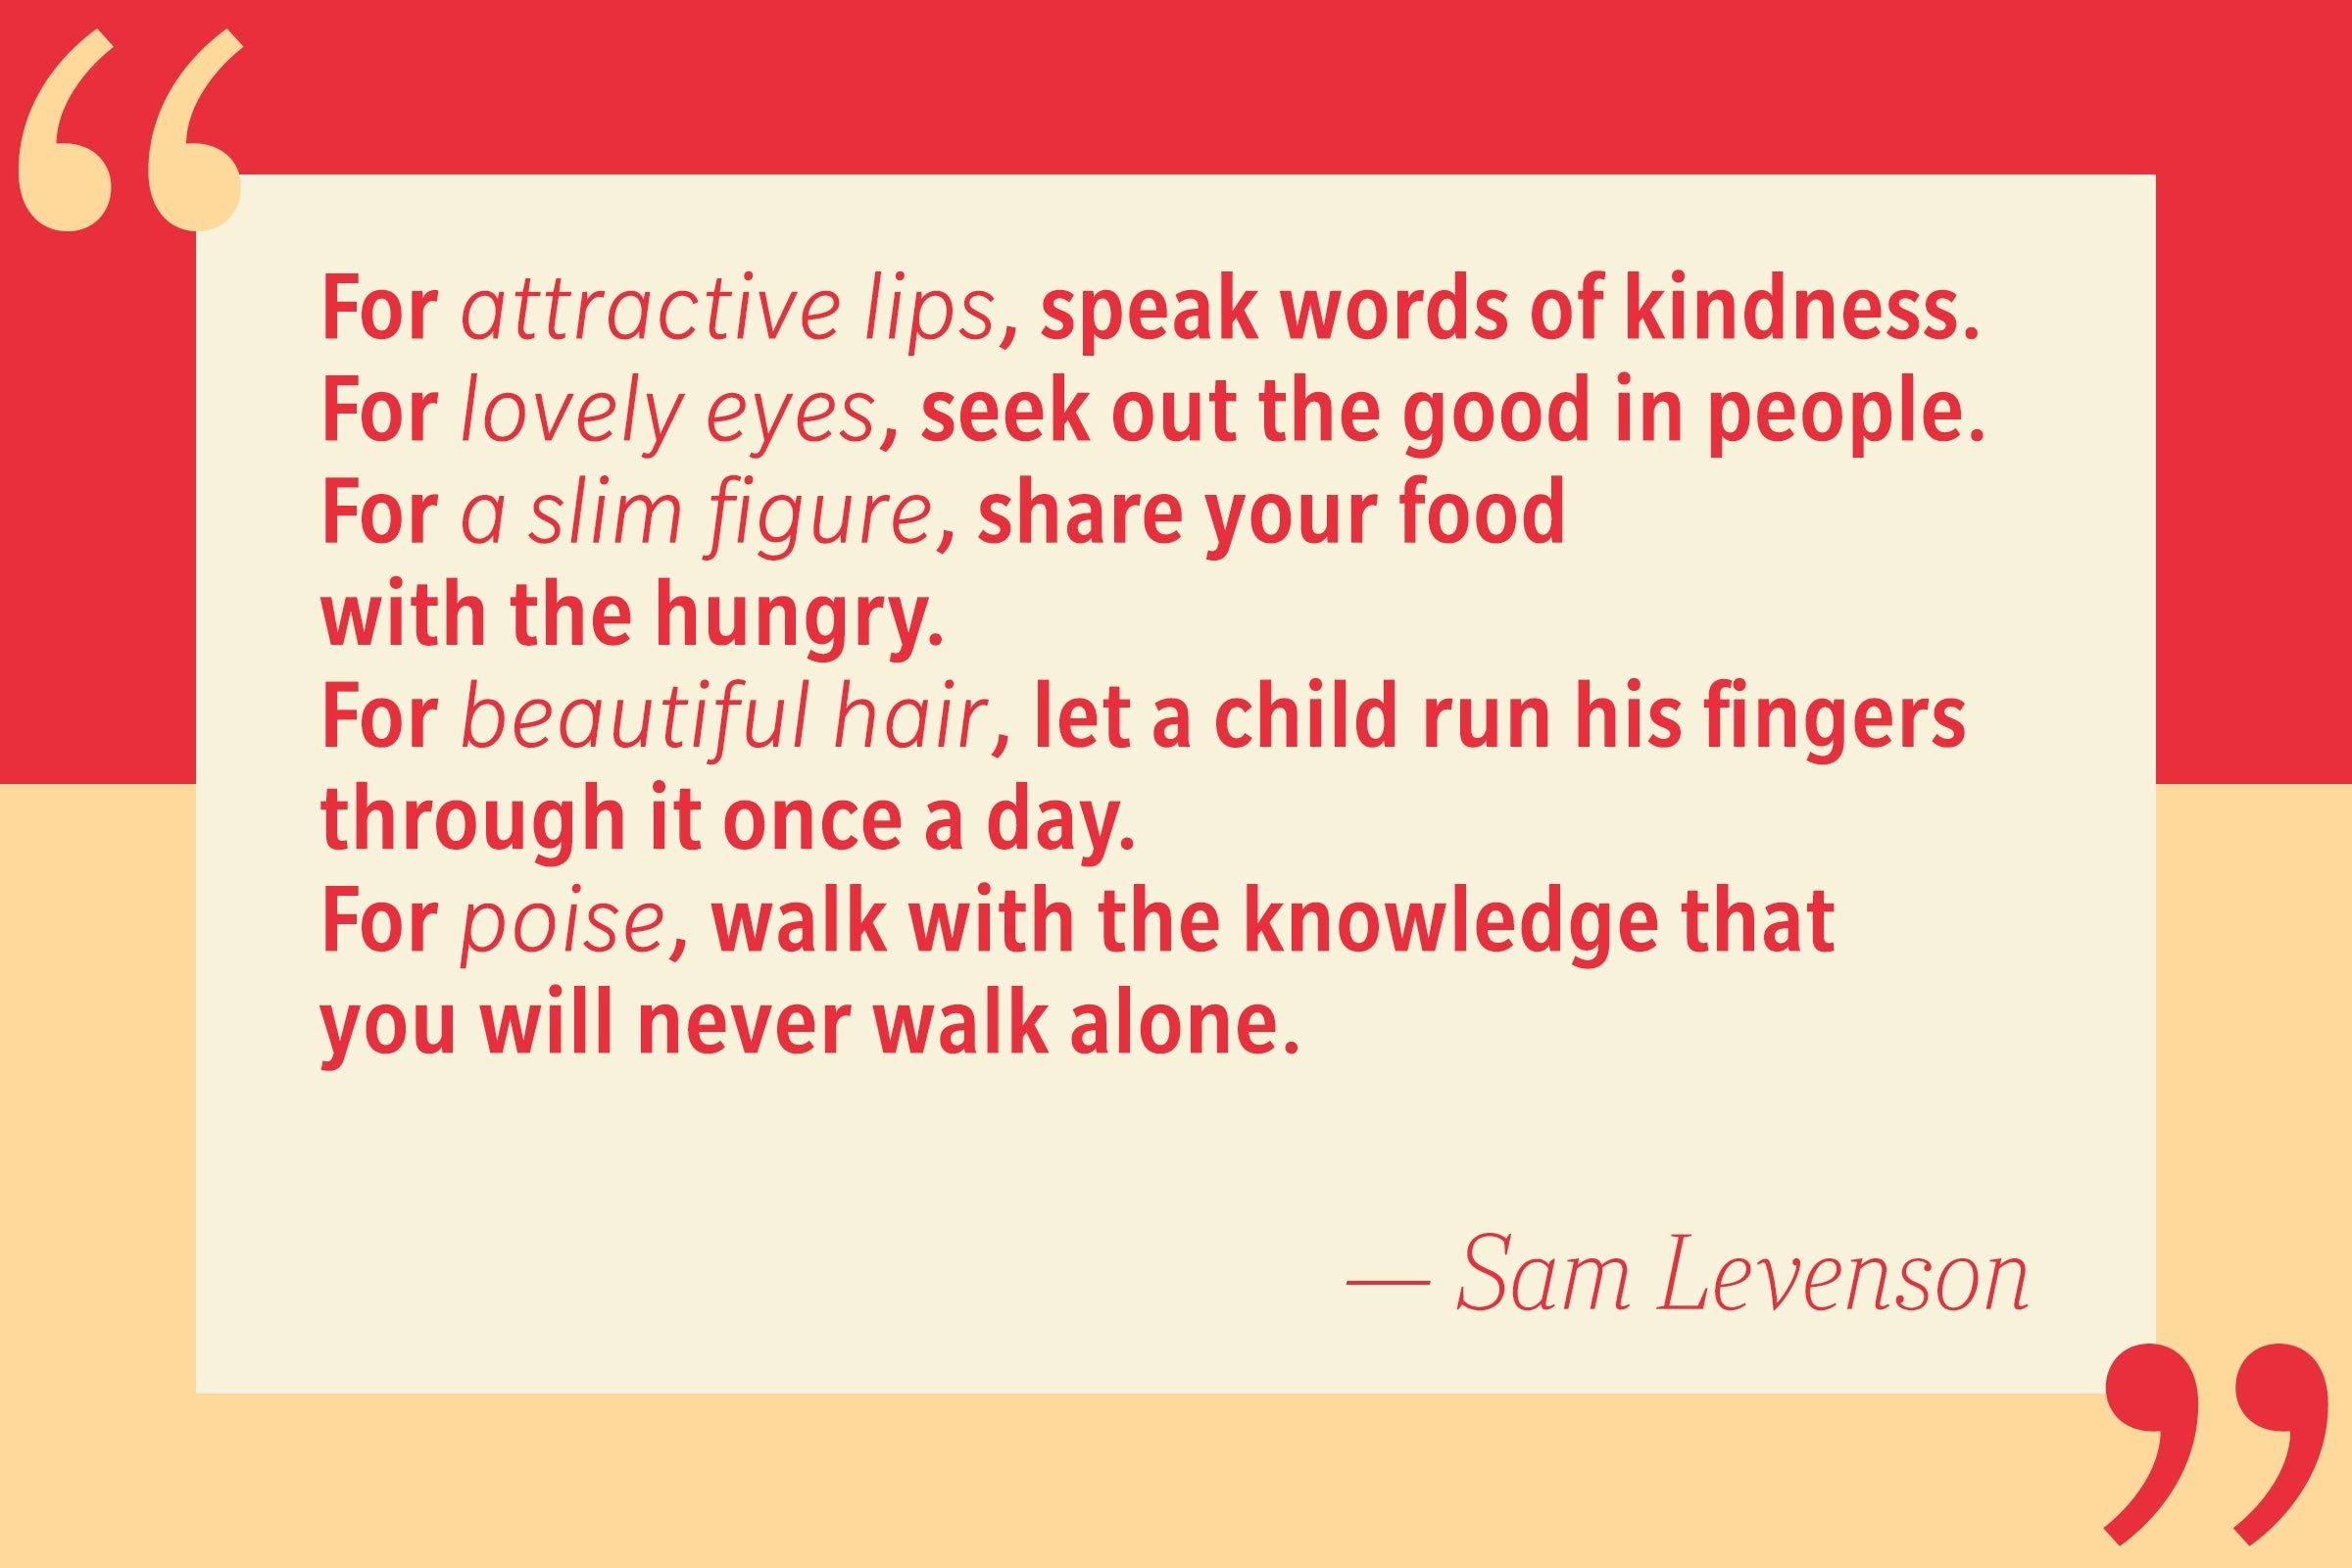 For attractive lips, speak words of kindness. — Sam Levenson